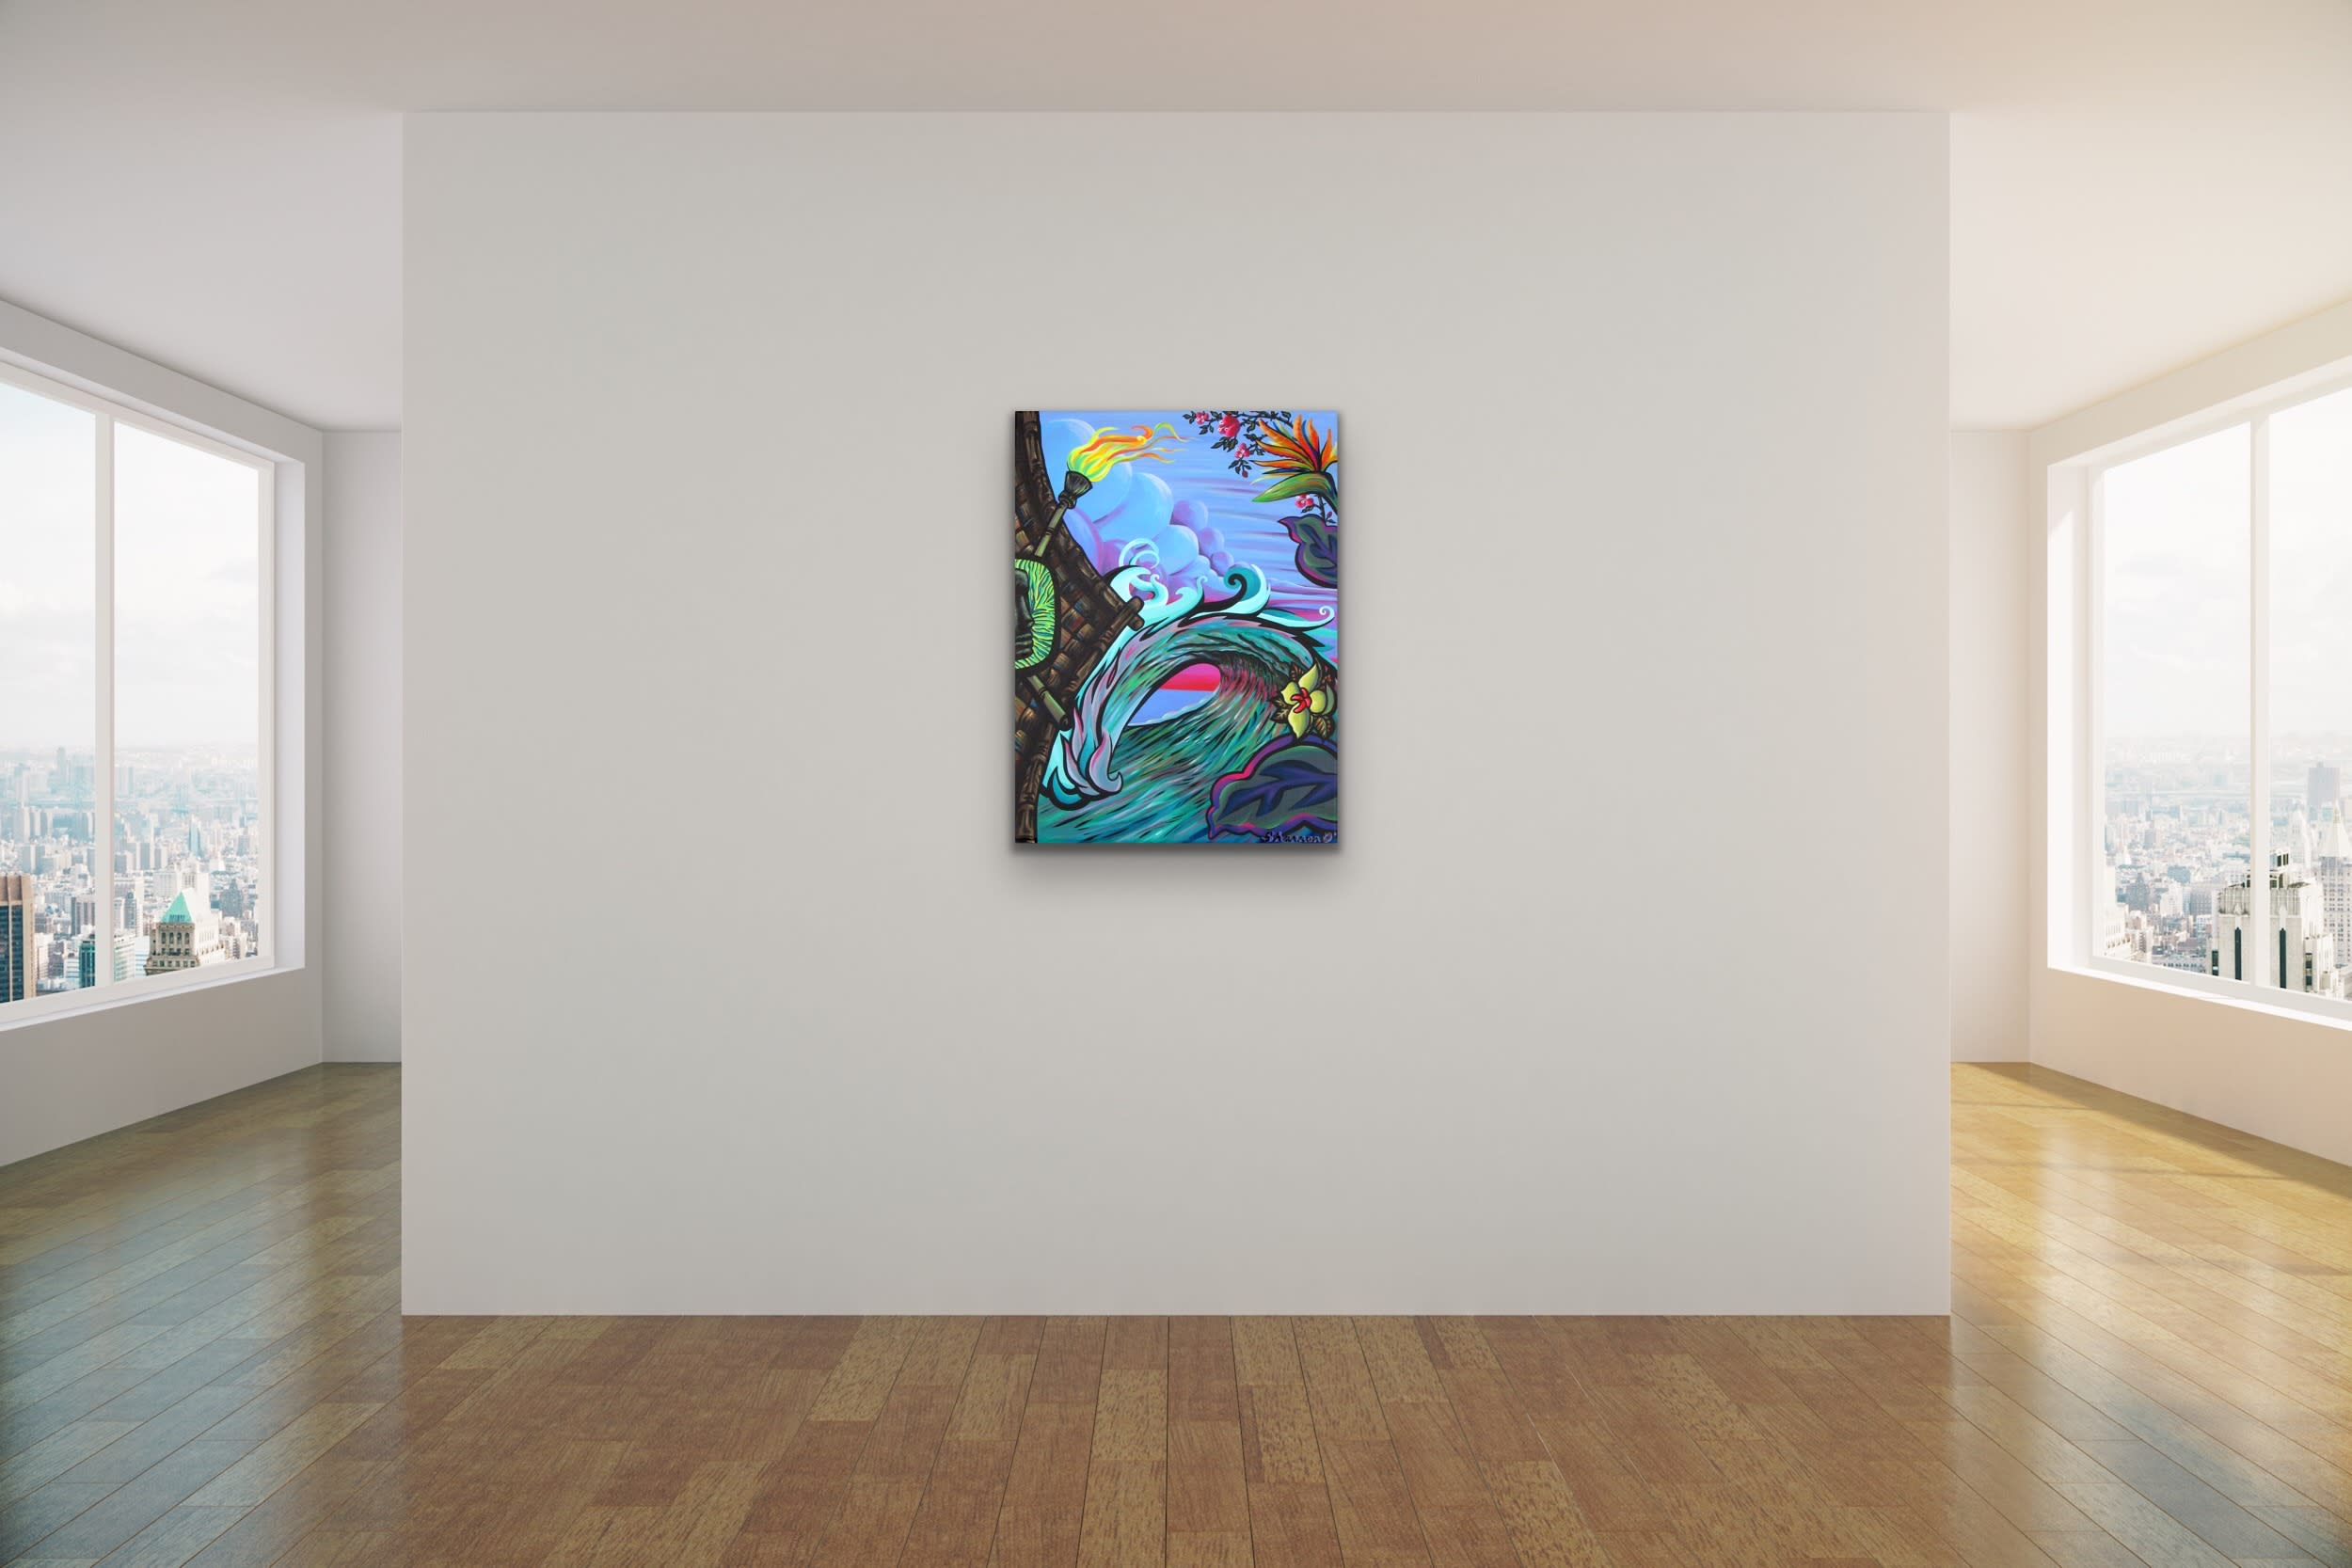 <div class='title'>           Shannon Oconnell Paintings Mock Ups Evo Art Maui Lahain Front Street Gallery Collect Popular Colorful Ocean Flowers Scenery Waves 6         </div>